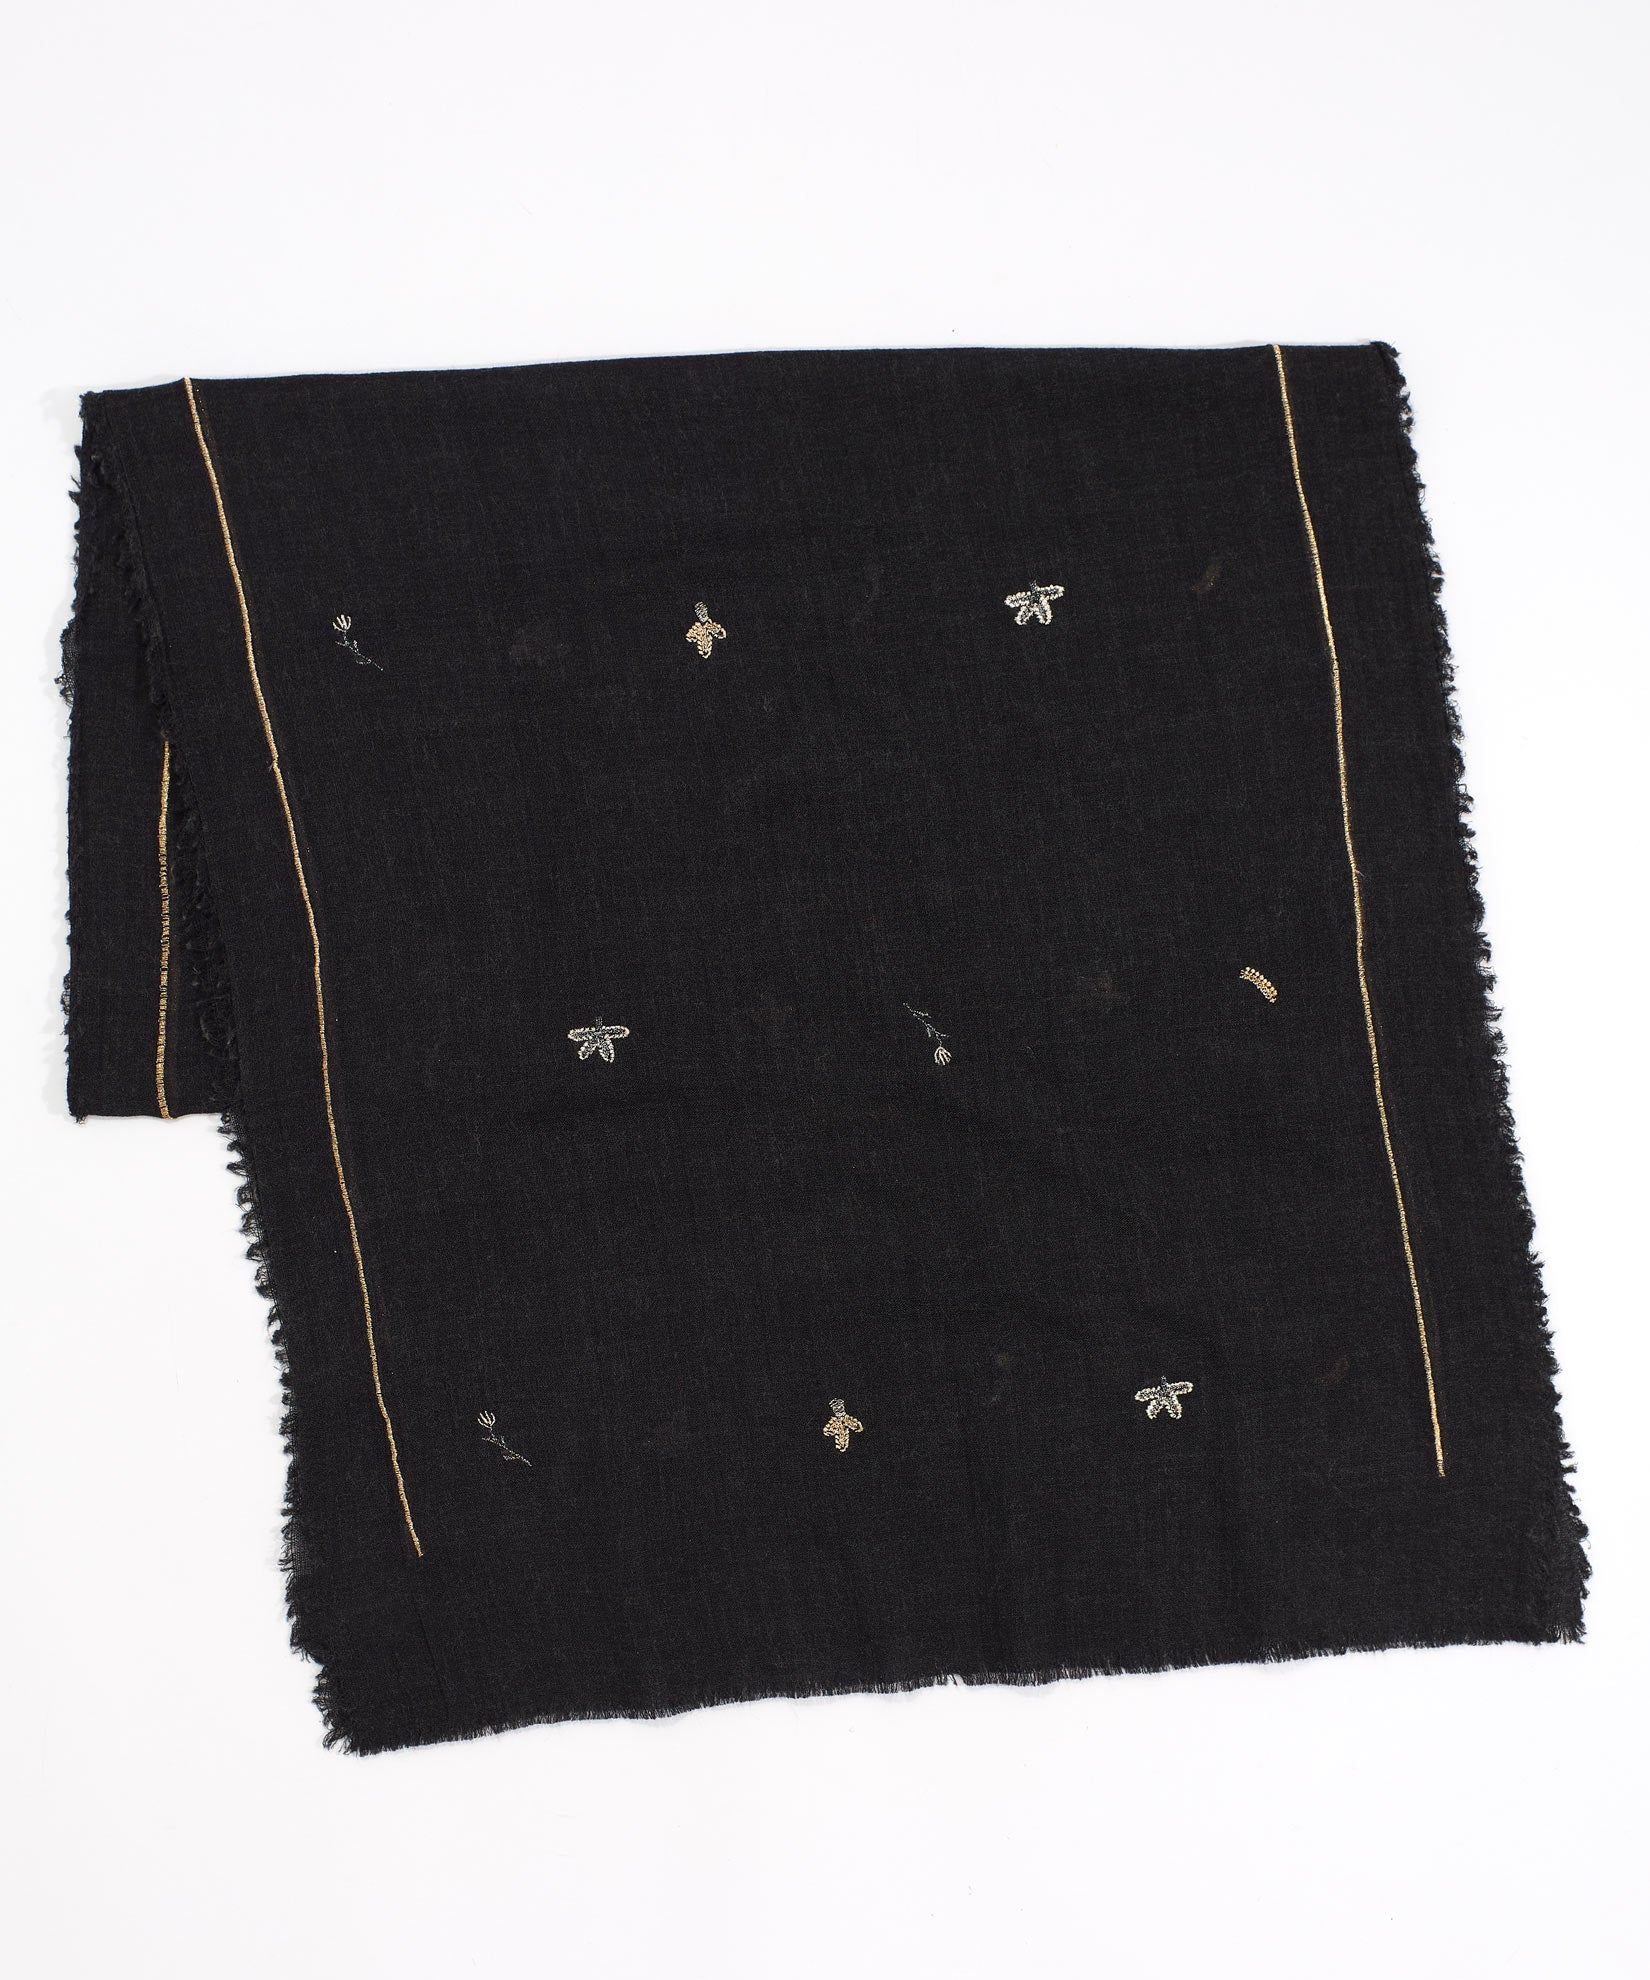 Black - Zari Thread Embroidered Oblong